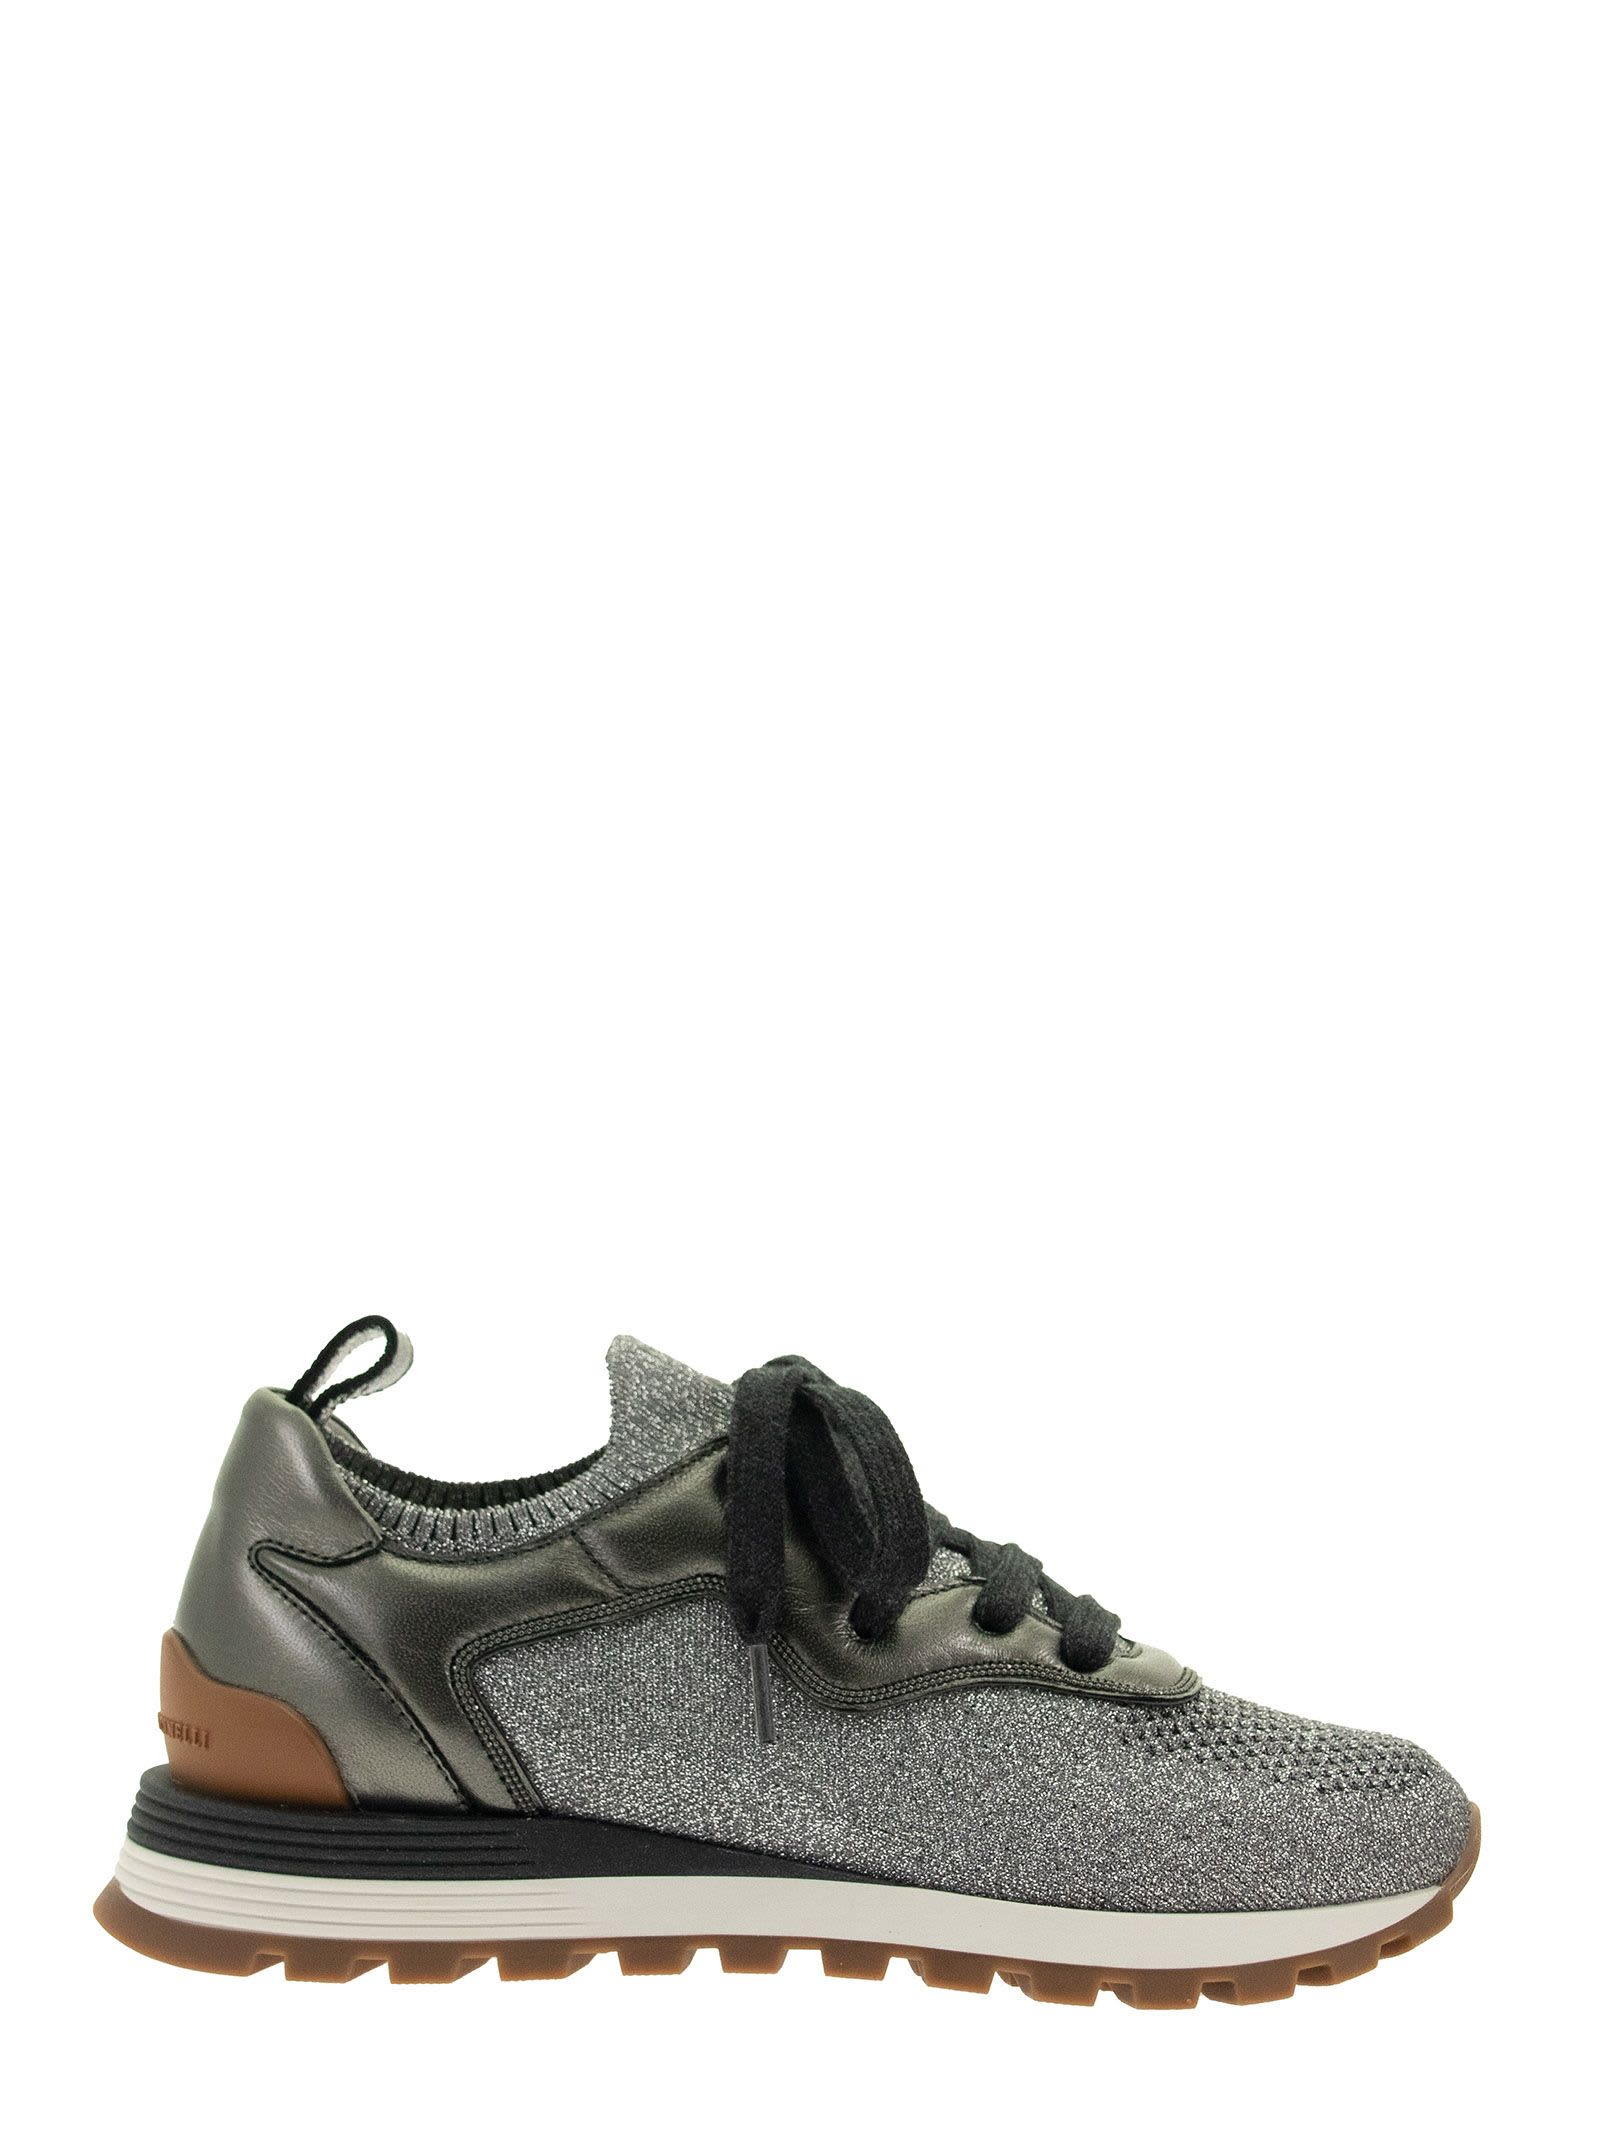 Brunello Cucinelli SNEAKERS SPARKLING KNIT AND NAPPA LEATHER RUNNERS WITH SHINY CONTOUR